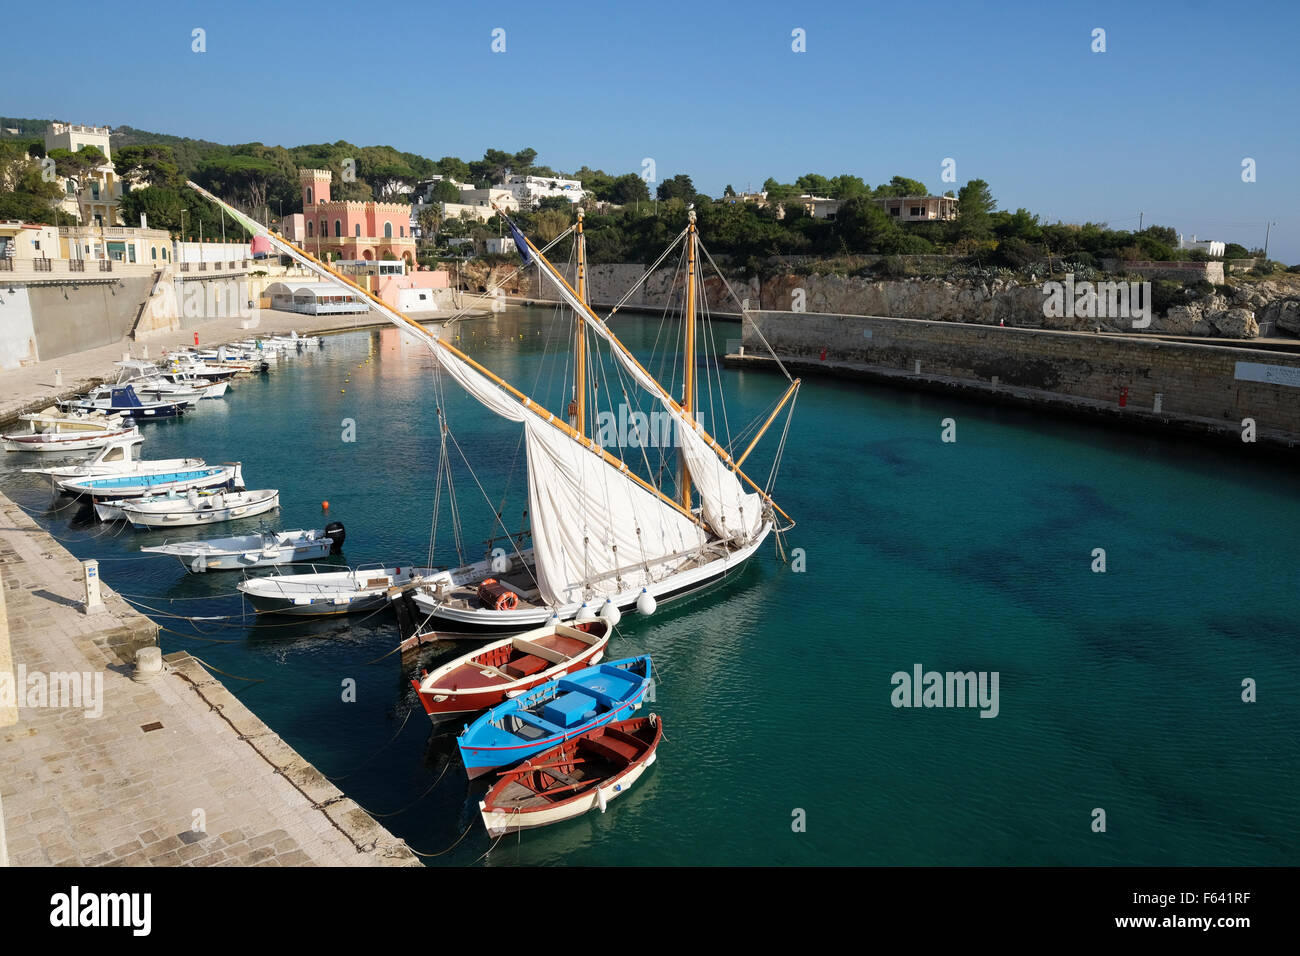 Boats in the harbour of Tricase, Lecce Province, Puglia, Italy Stock Photo